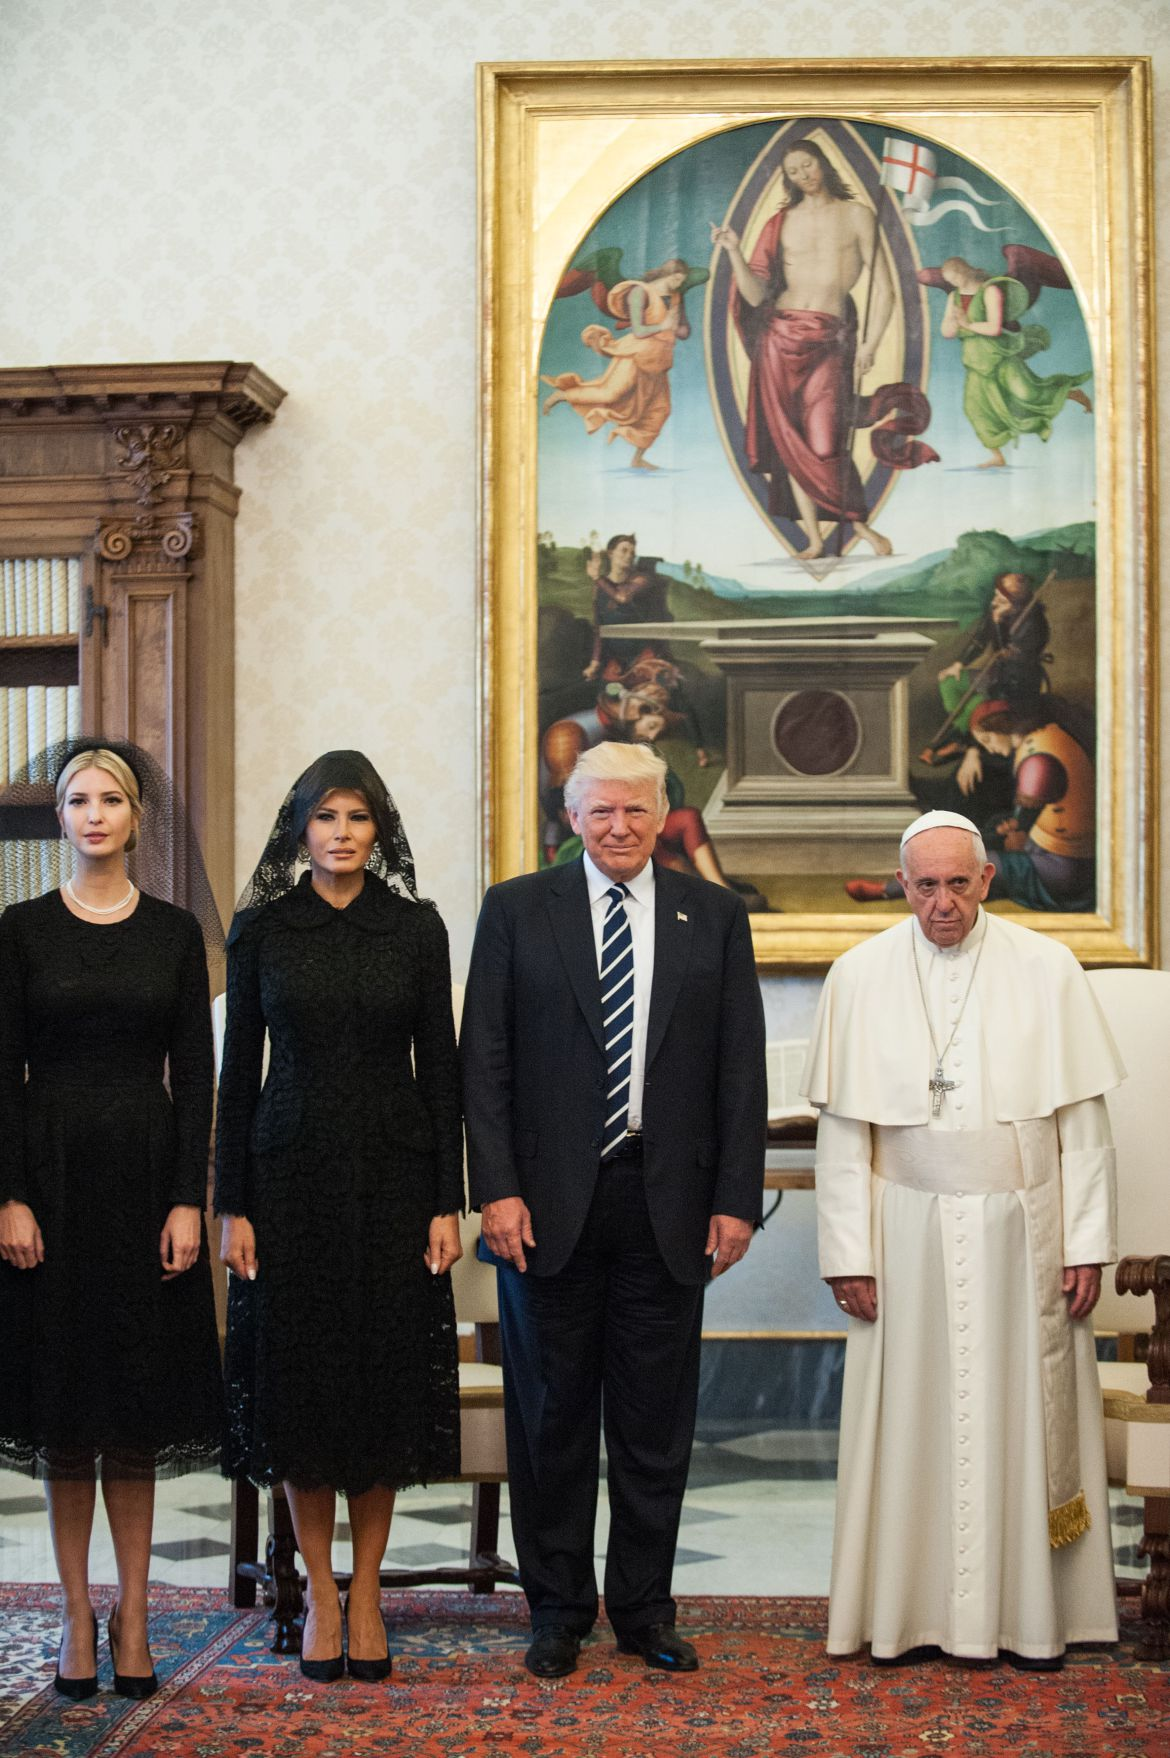 Donald Trump visit to the Vatican, Rome, Italy - 24 May 2017